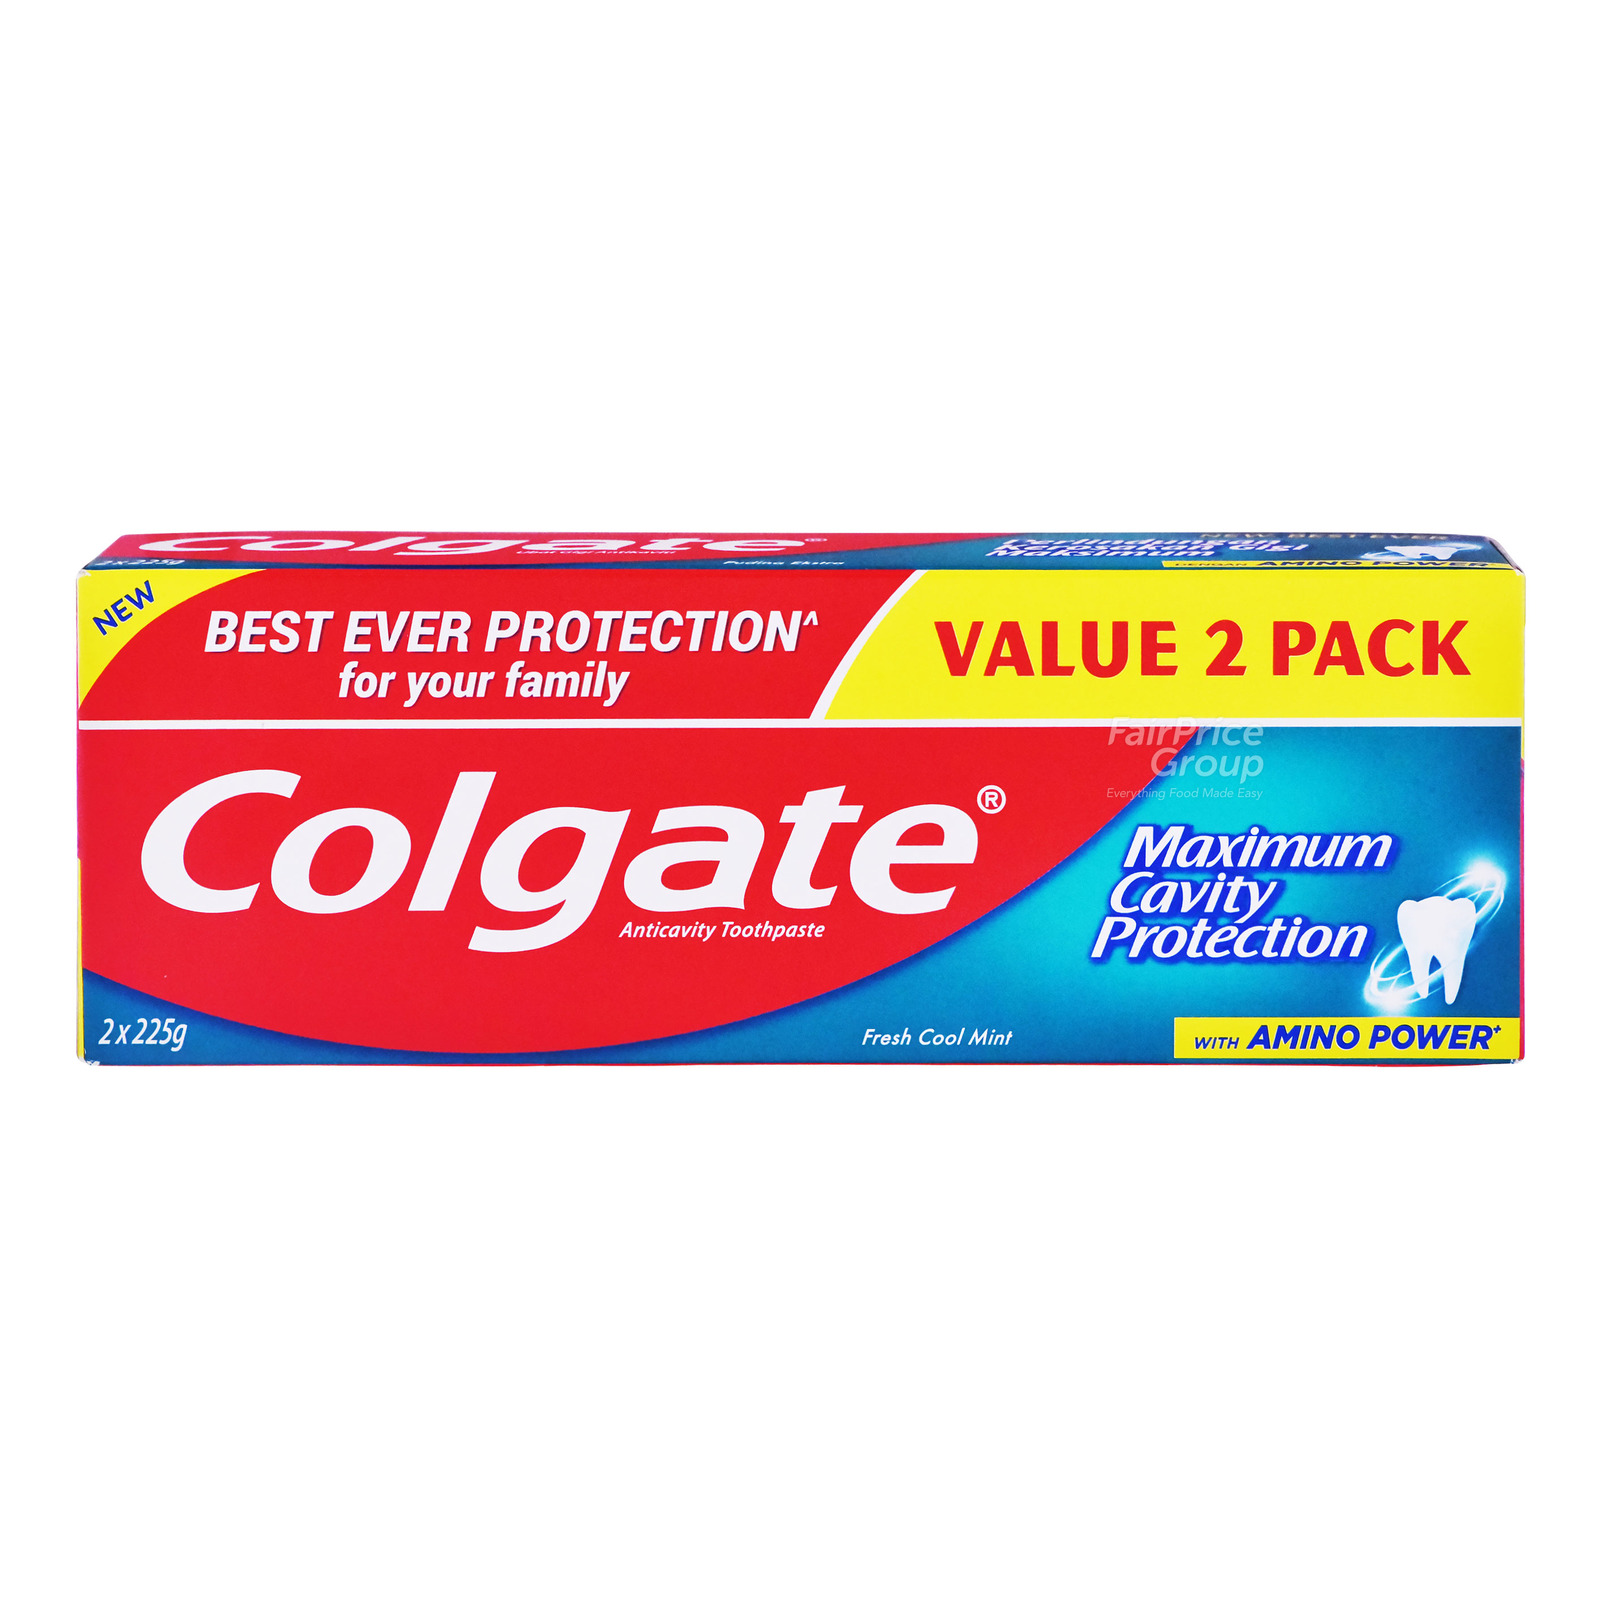 Colgate Maximum Cavity Protection Toothpaste - FreshCoolMint